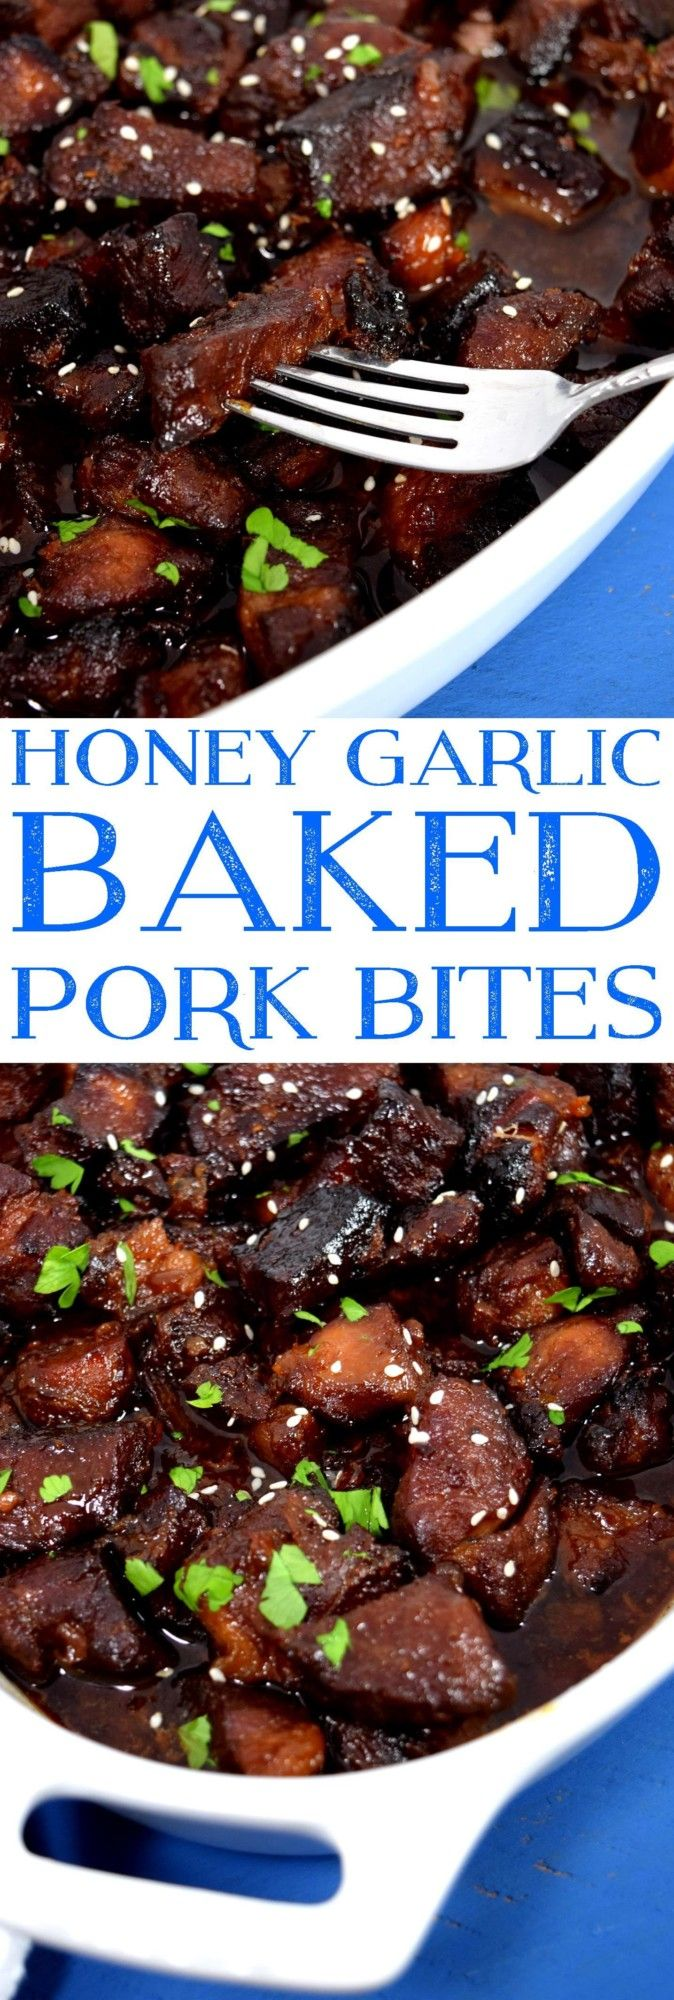 Honey Garlic Baked Pork Bites 2